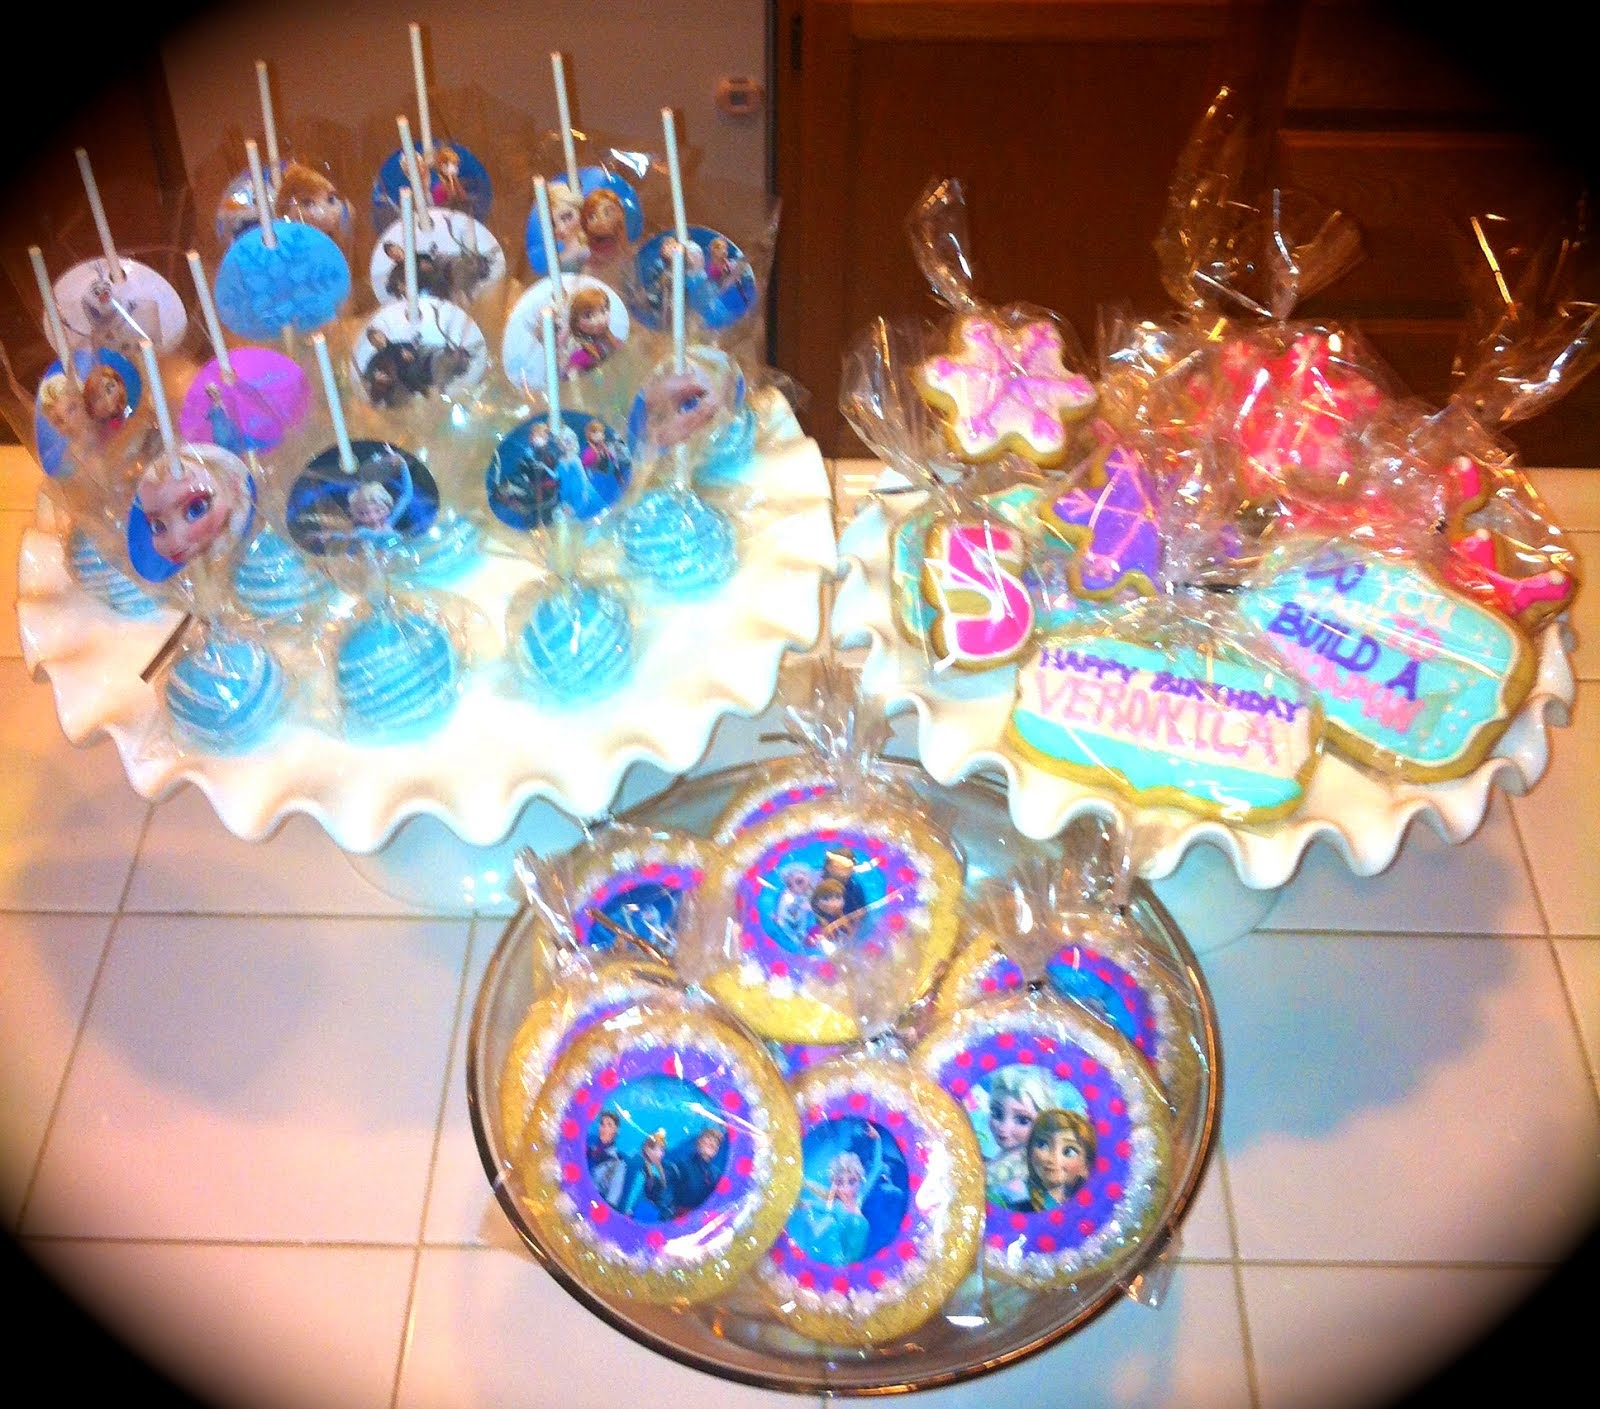 FROZEN PARTY DESSERTS